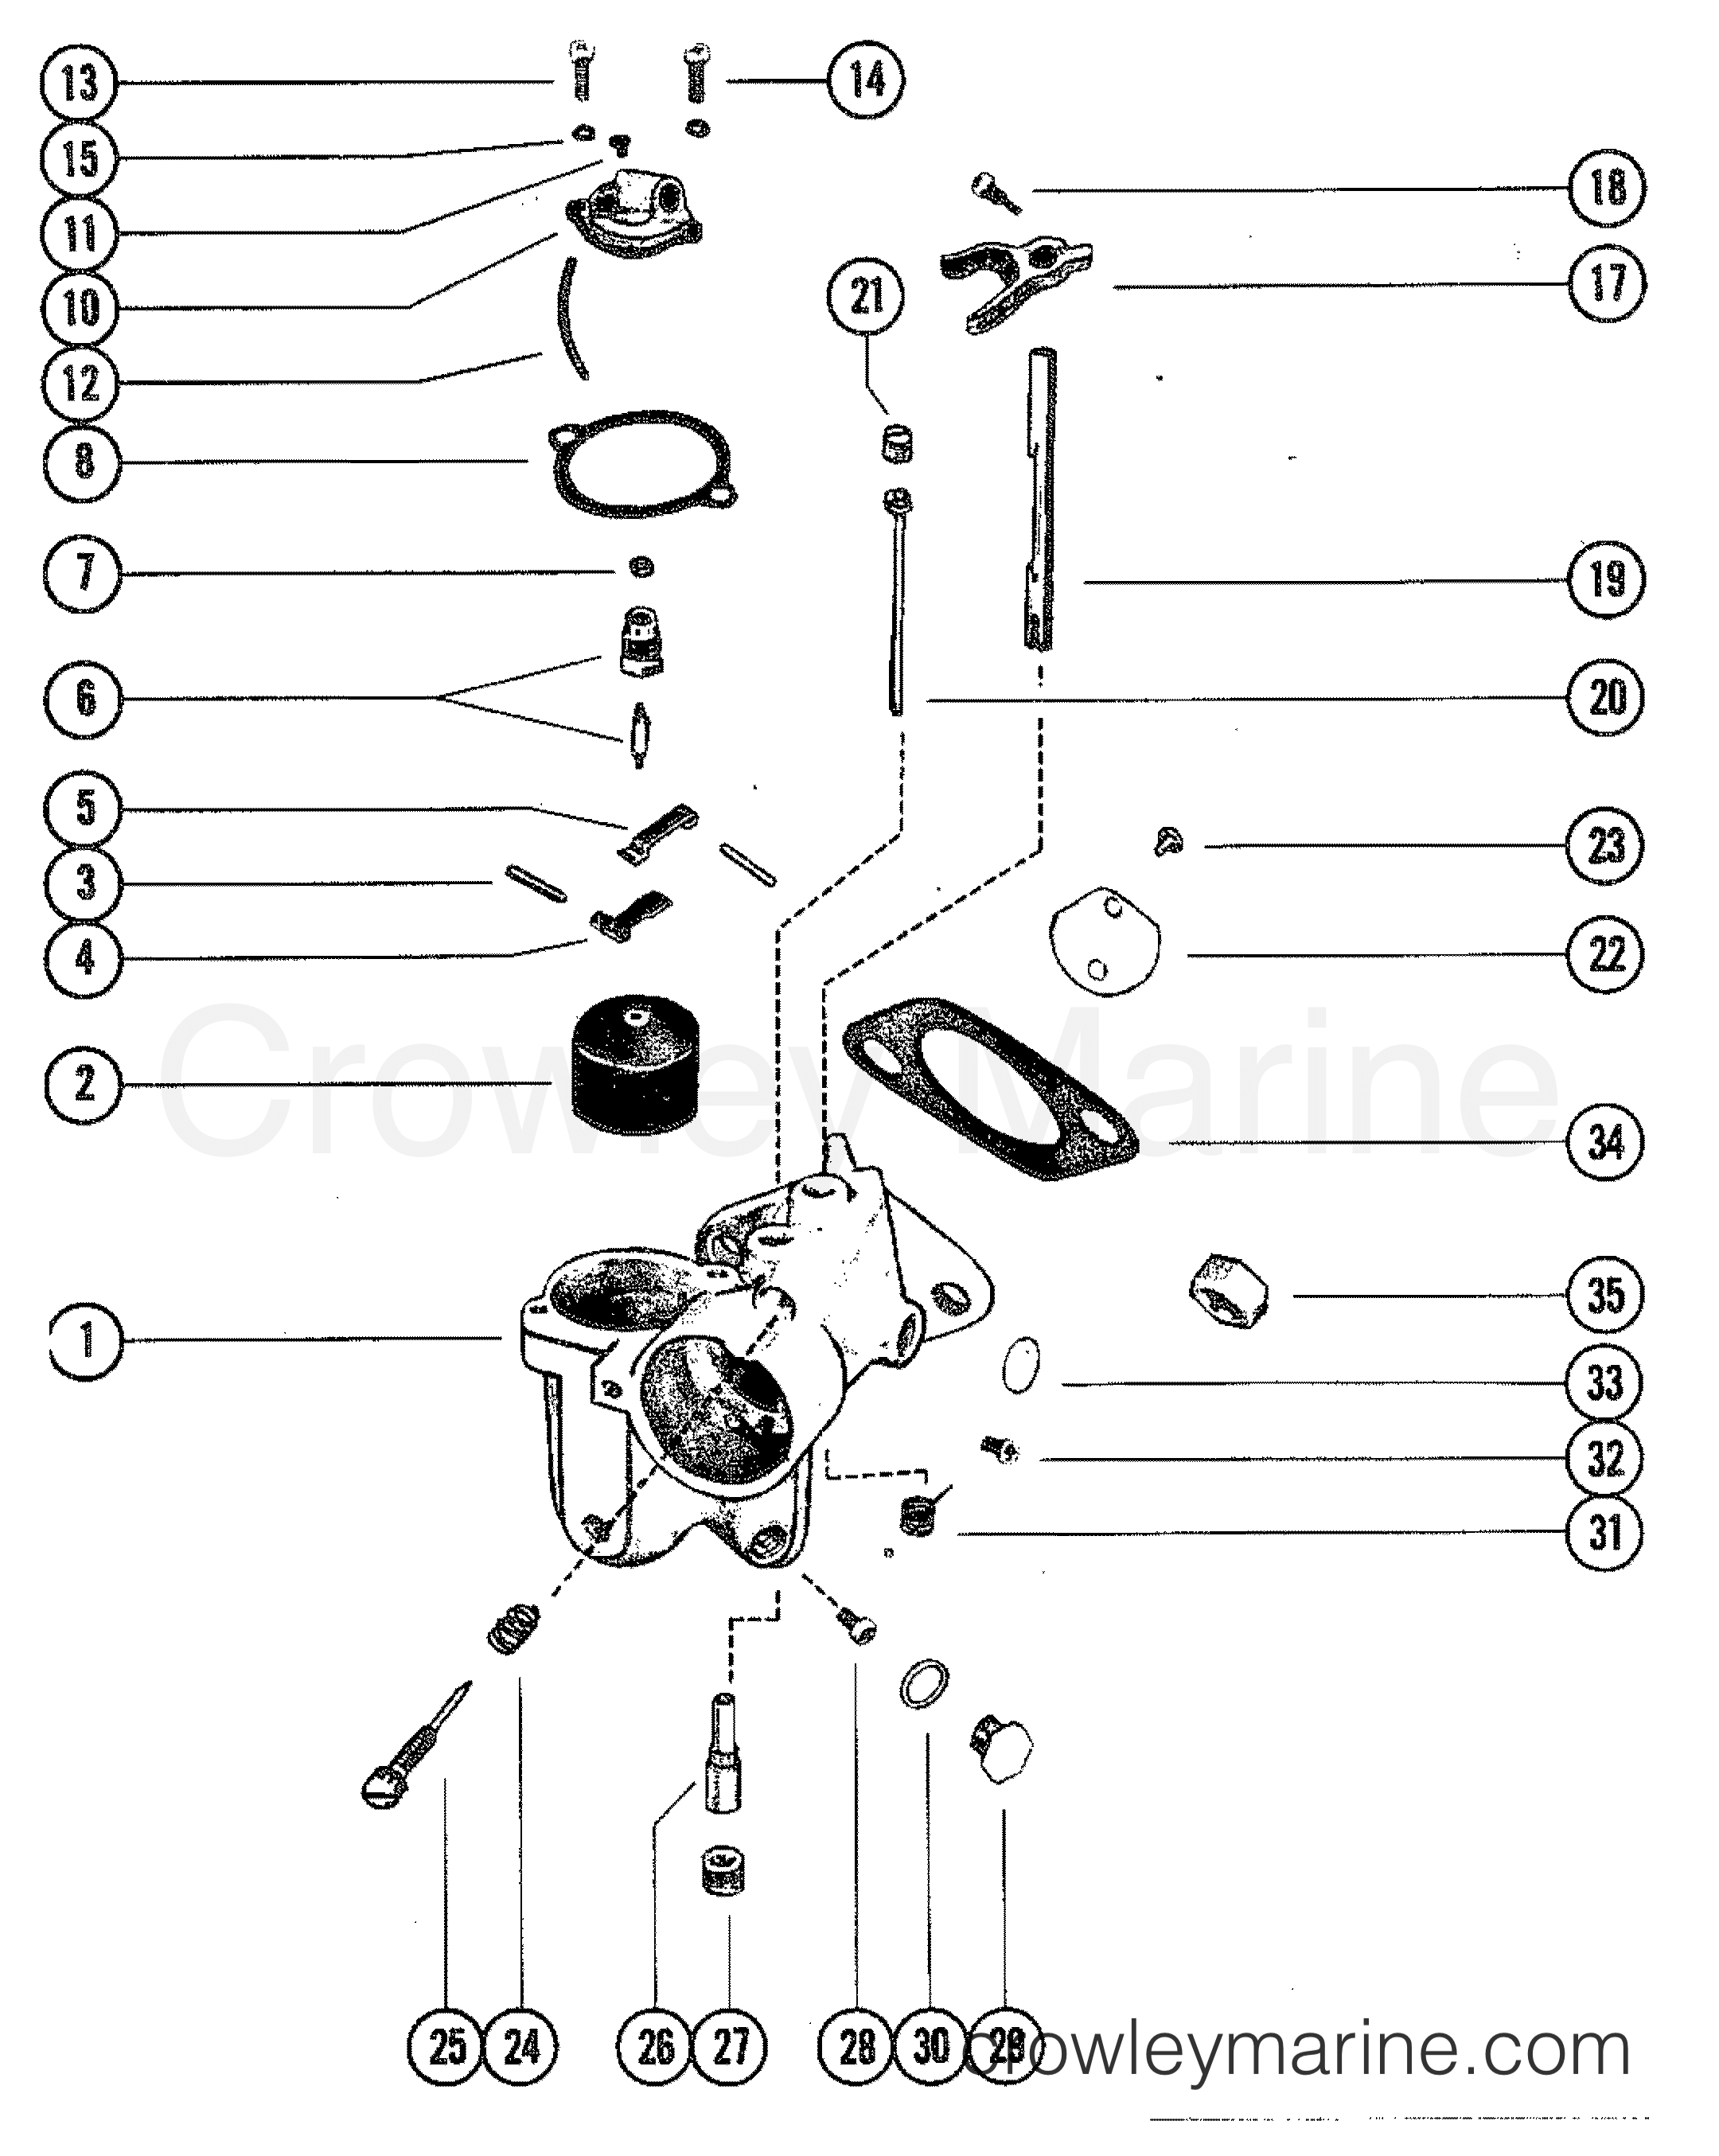 1980 mercury outboard 90 [elpt] - 1090620 - carburetor assembly section